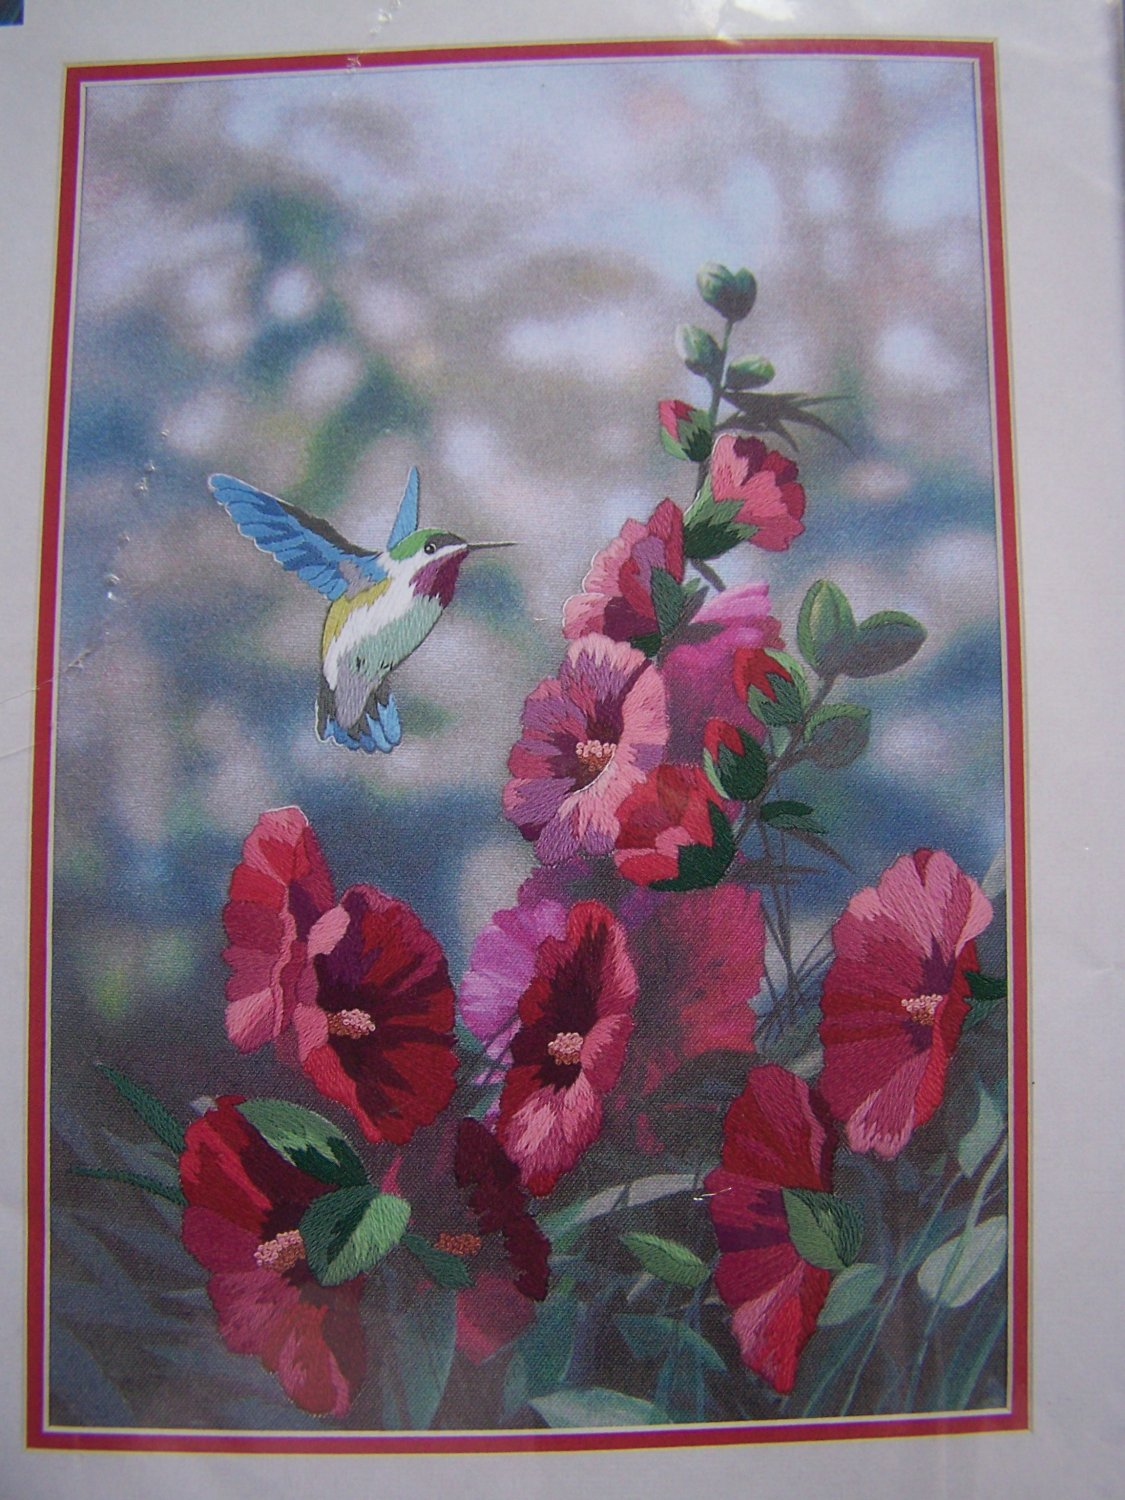 New Hollyhocks in Bloom Crewel Embroidery Craft Kit Sunset Dimensions 11127